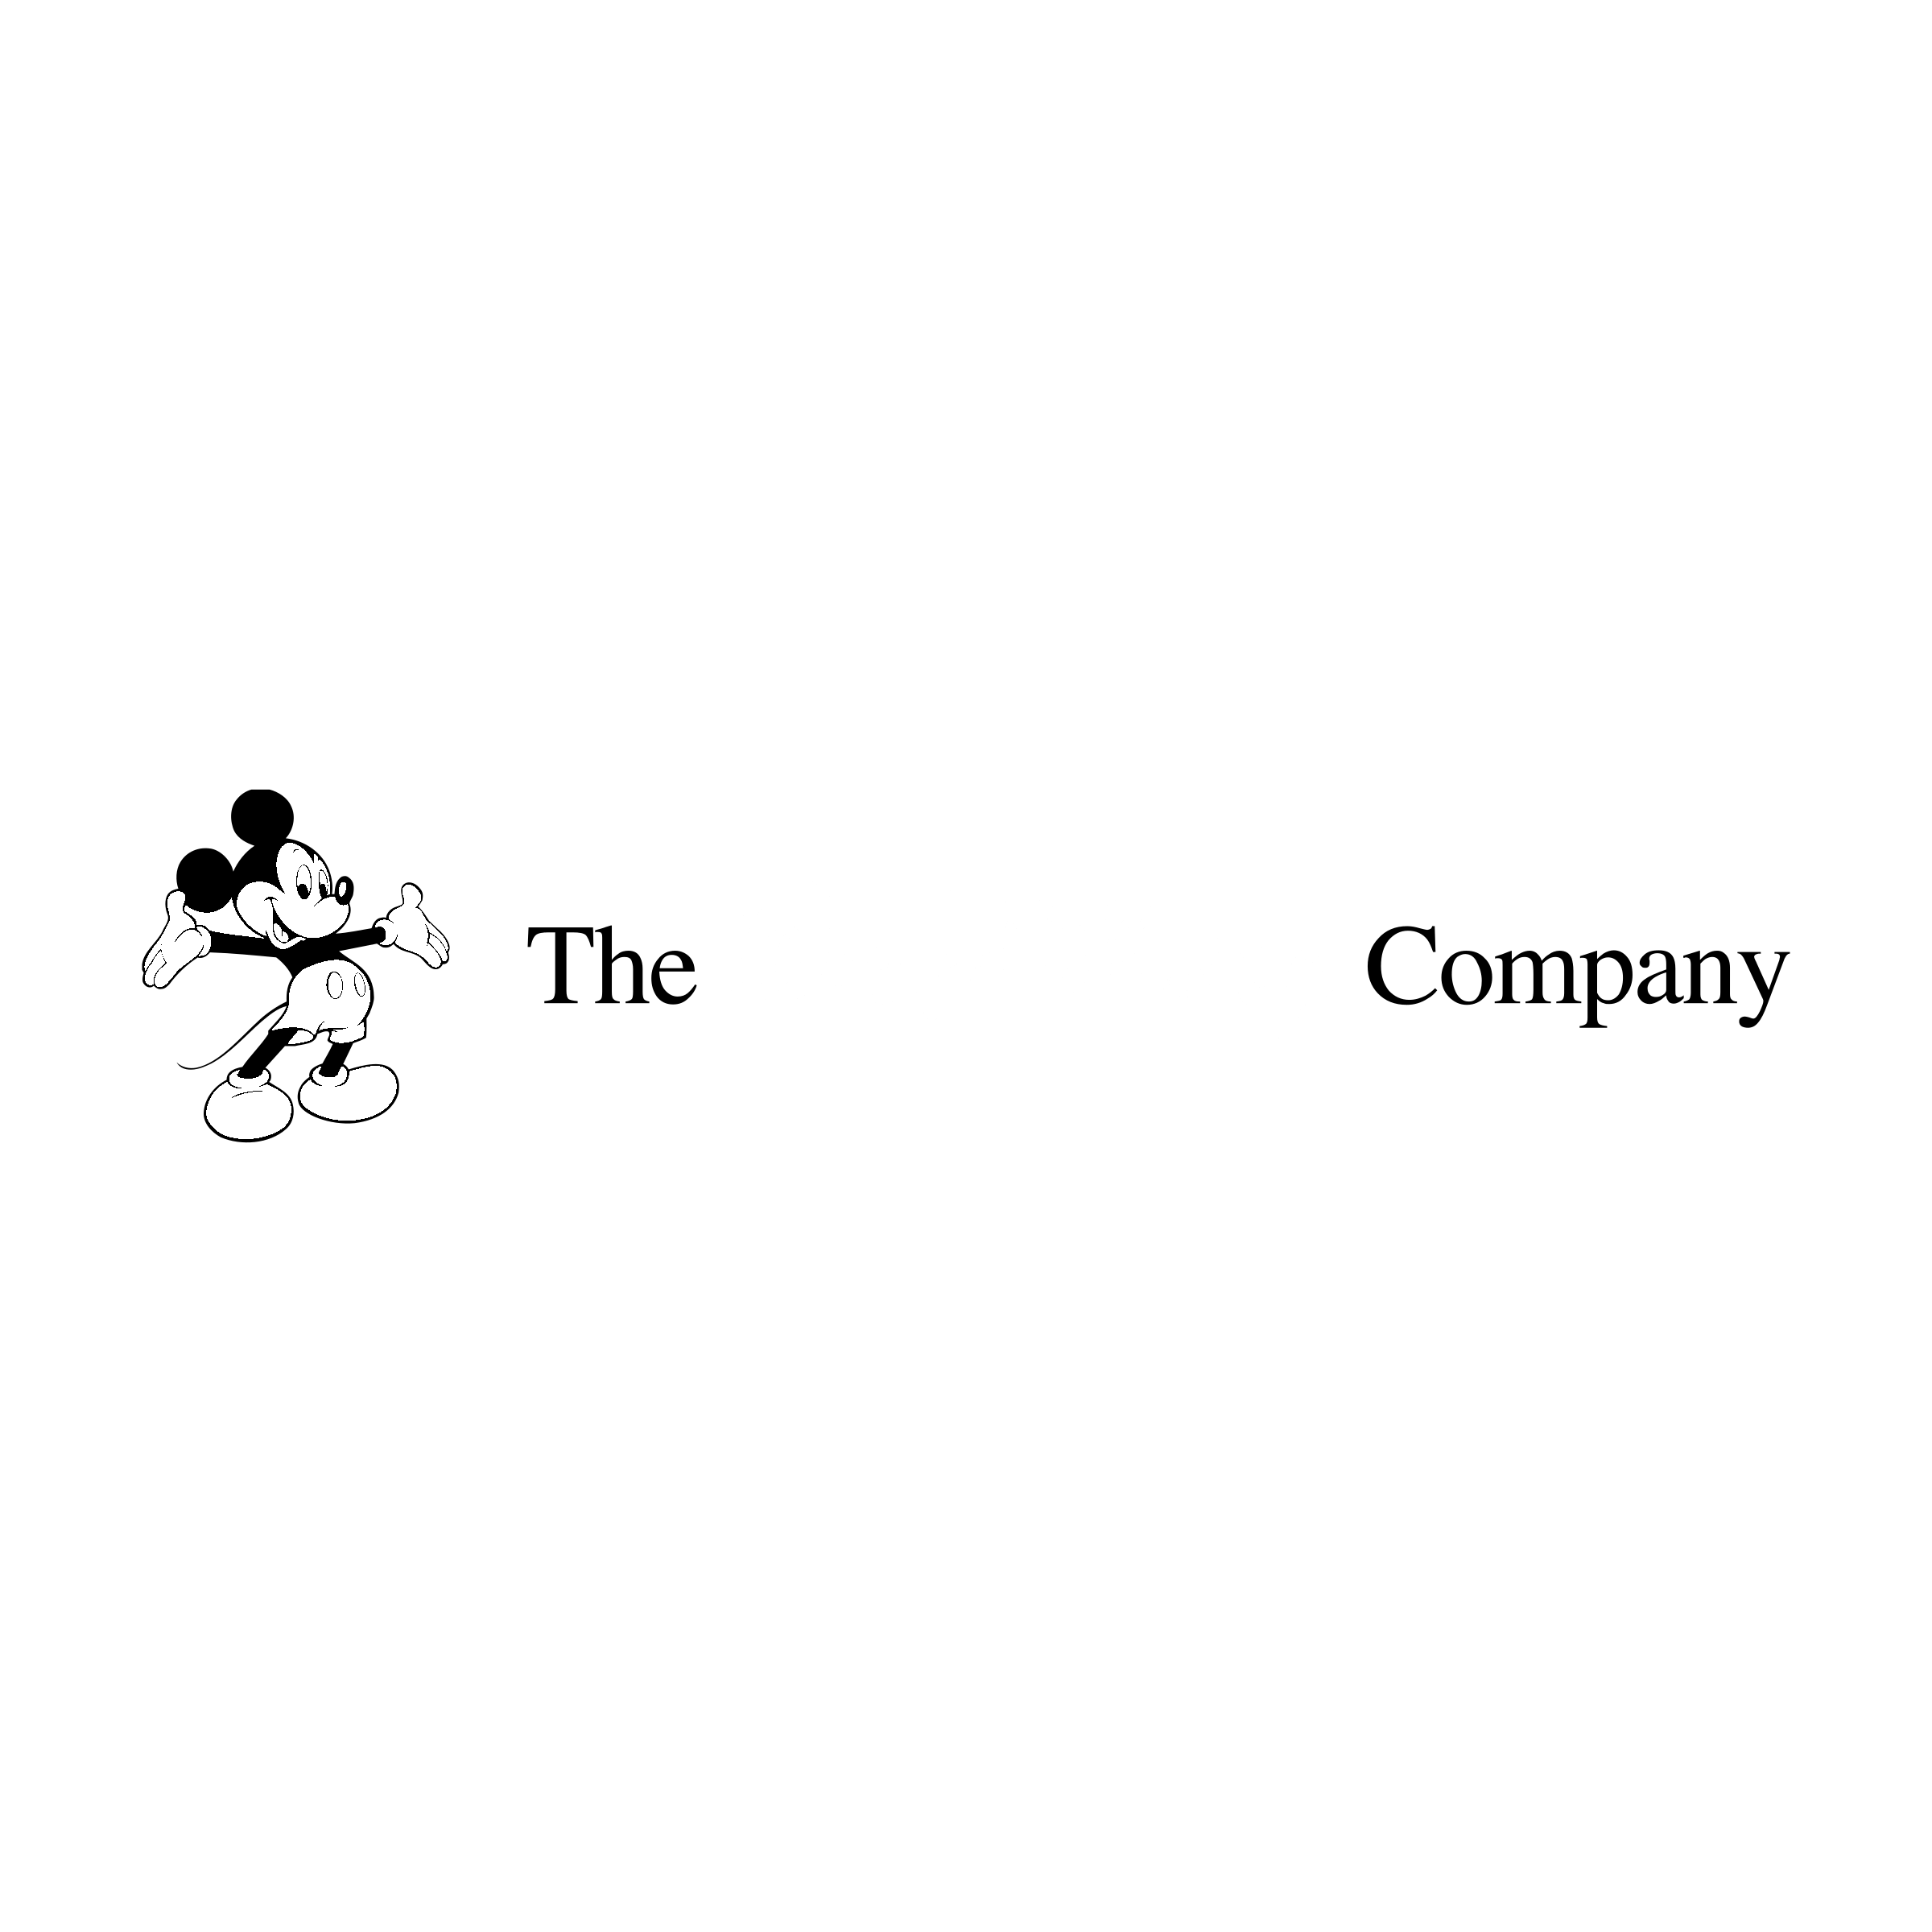 The Walt Disney Company Logo - The Walt Disney Company Logo PNG Transparent & SVG Vector - Freebie ...